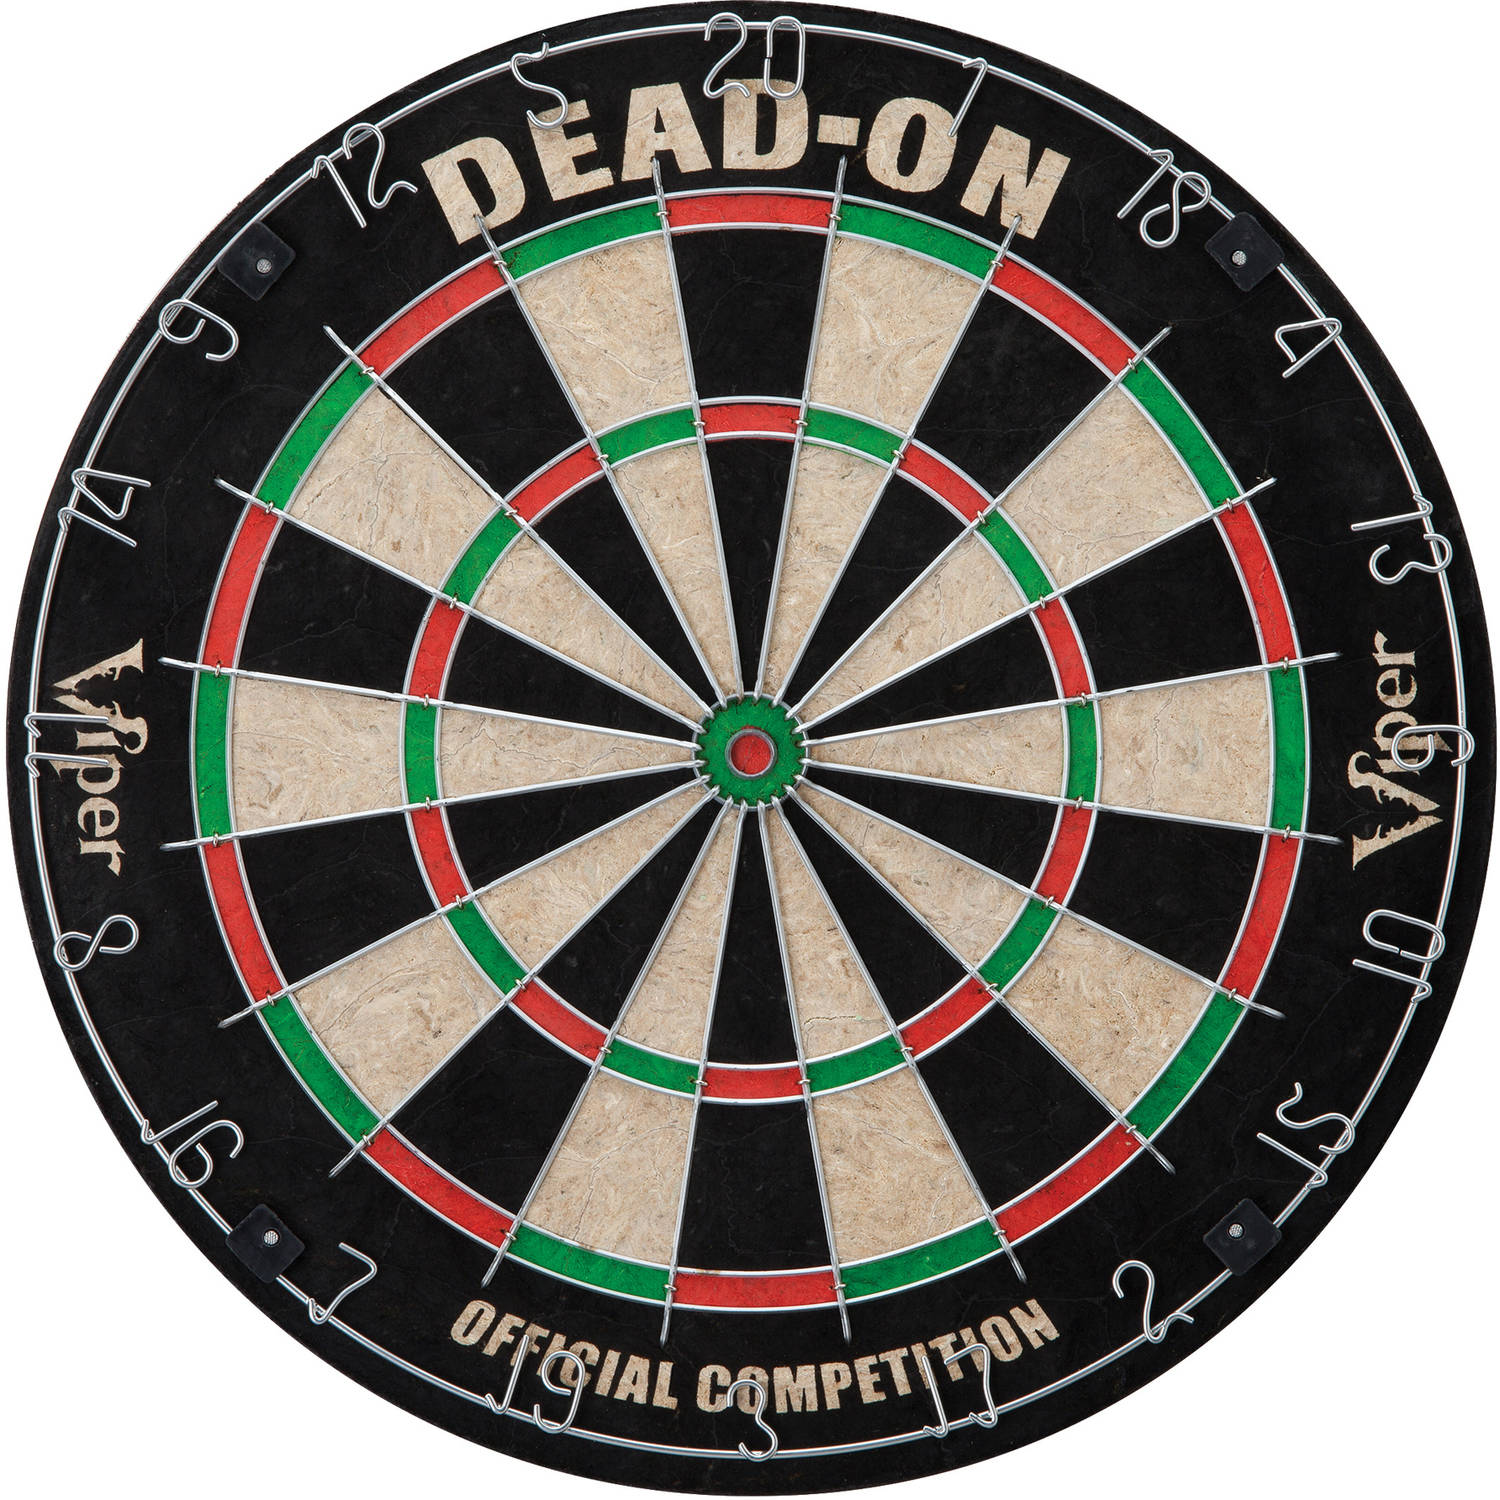 Viper Dead-On Bristle Dartboard by Generic